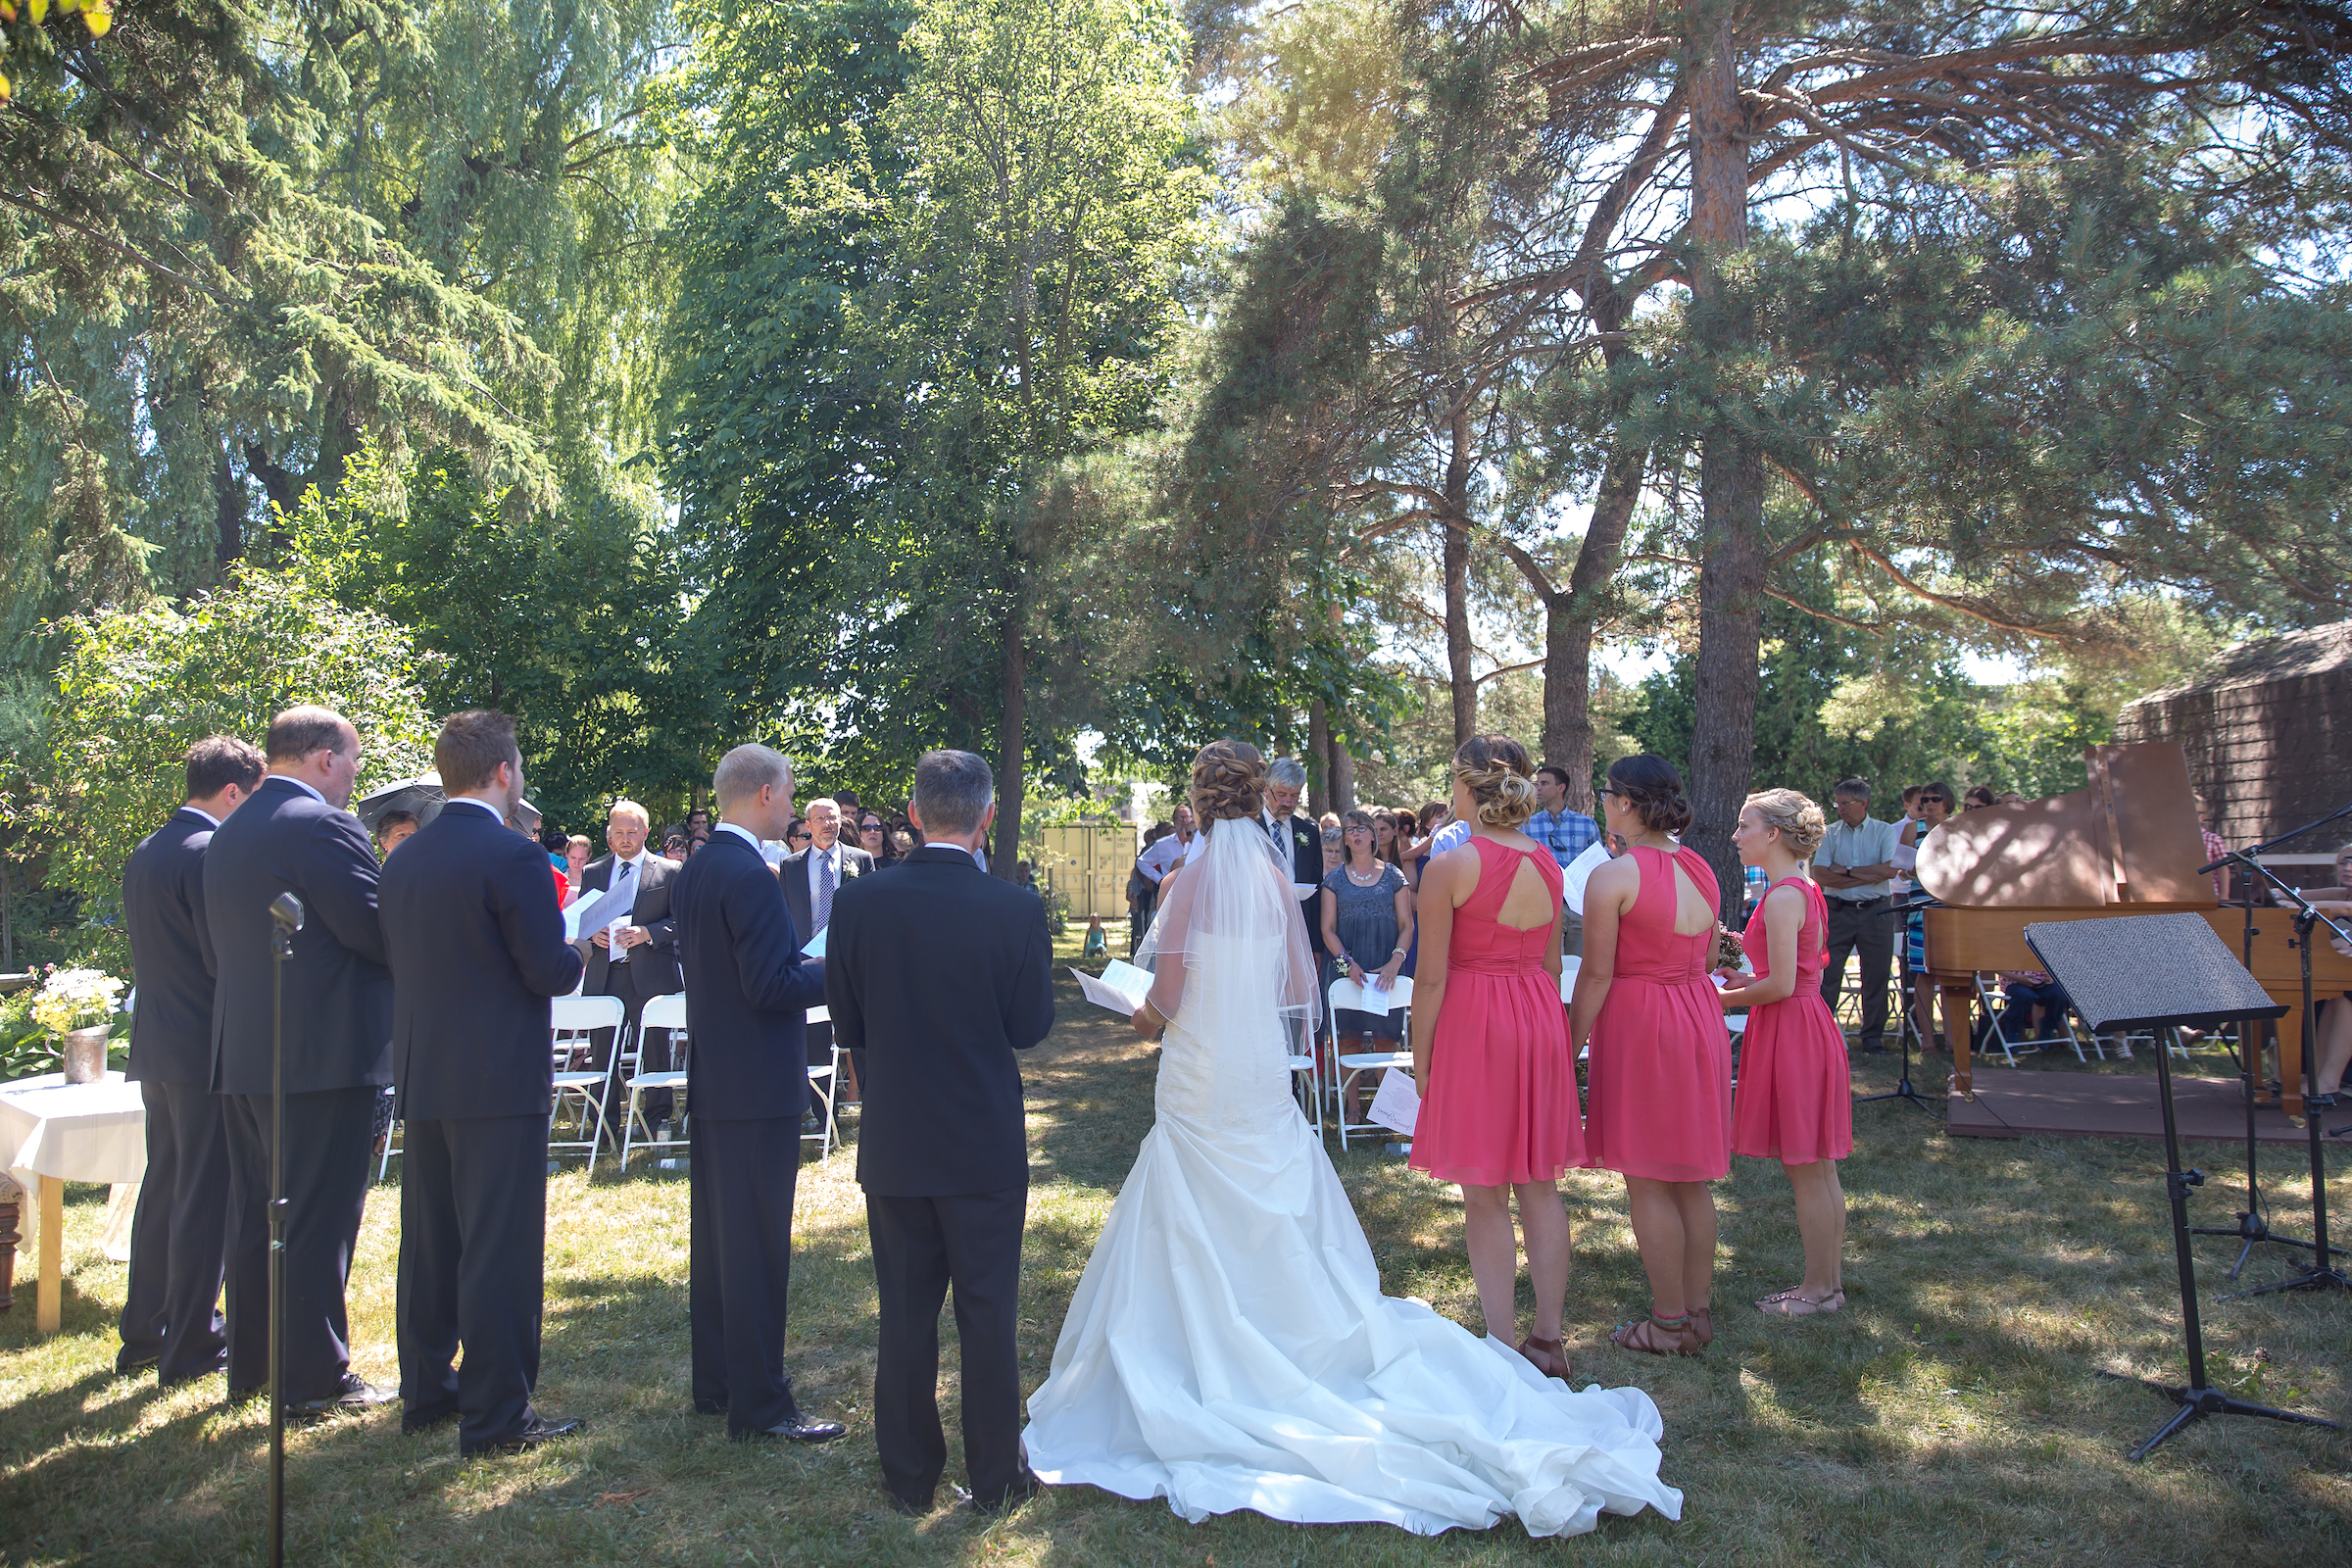 Jennica & Frazer's Summer Garden Wedding